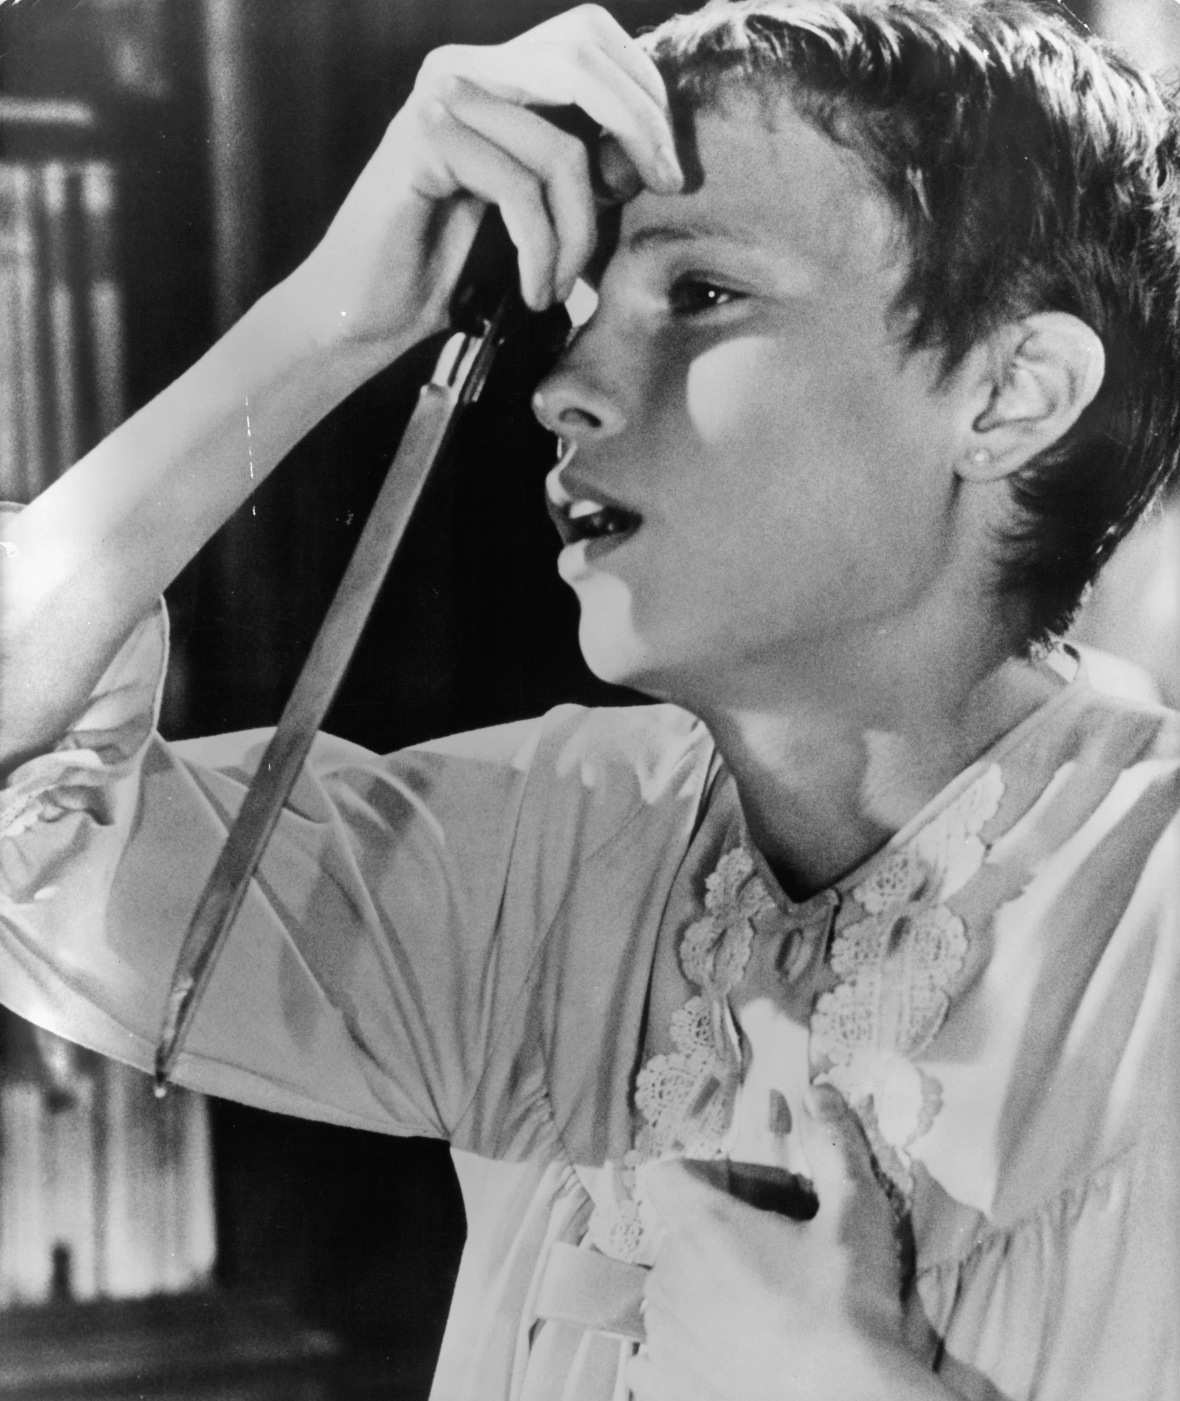 rosemary's baby getty images